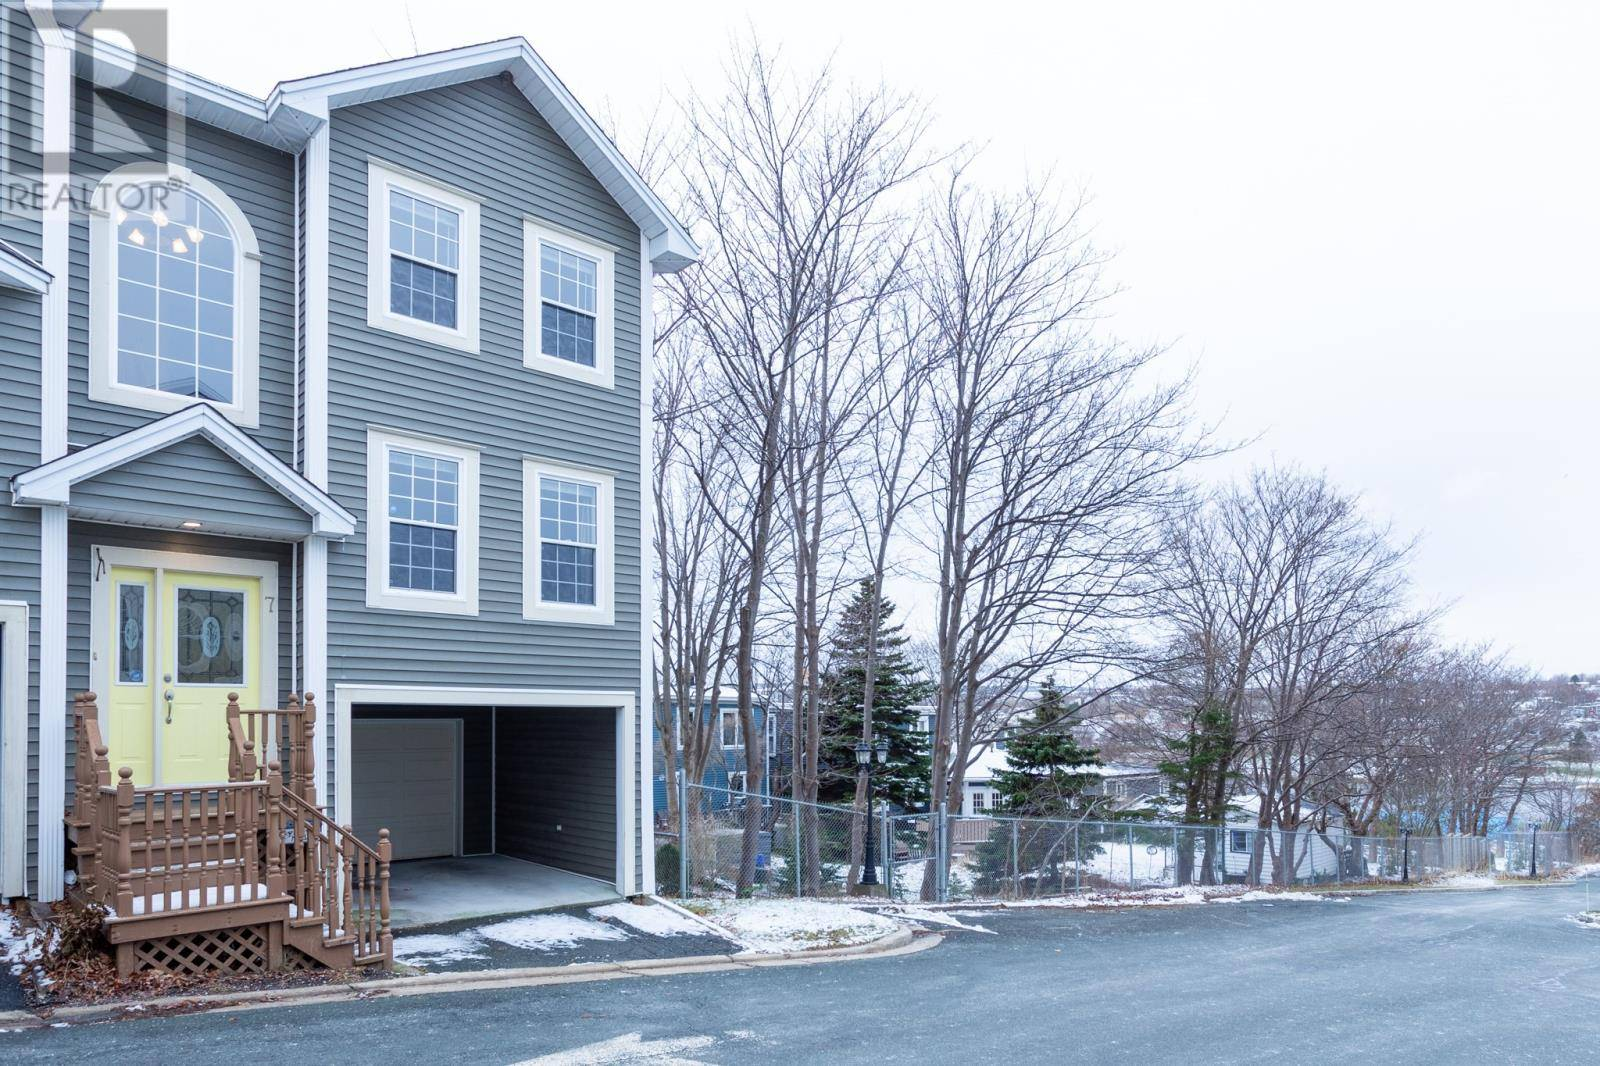 House for sale at 115 Forest Rd Unit 7 St. John's Newfoundland - MLS: 1208920